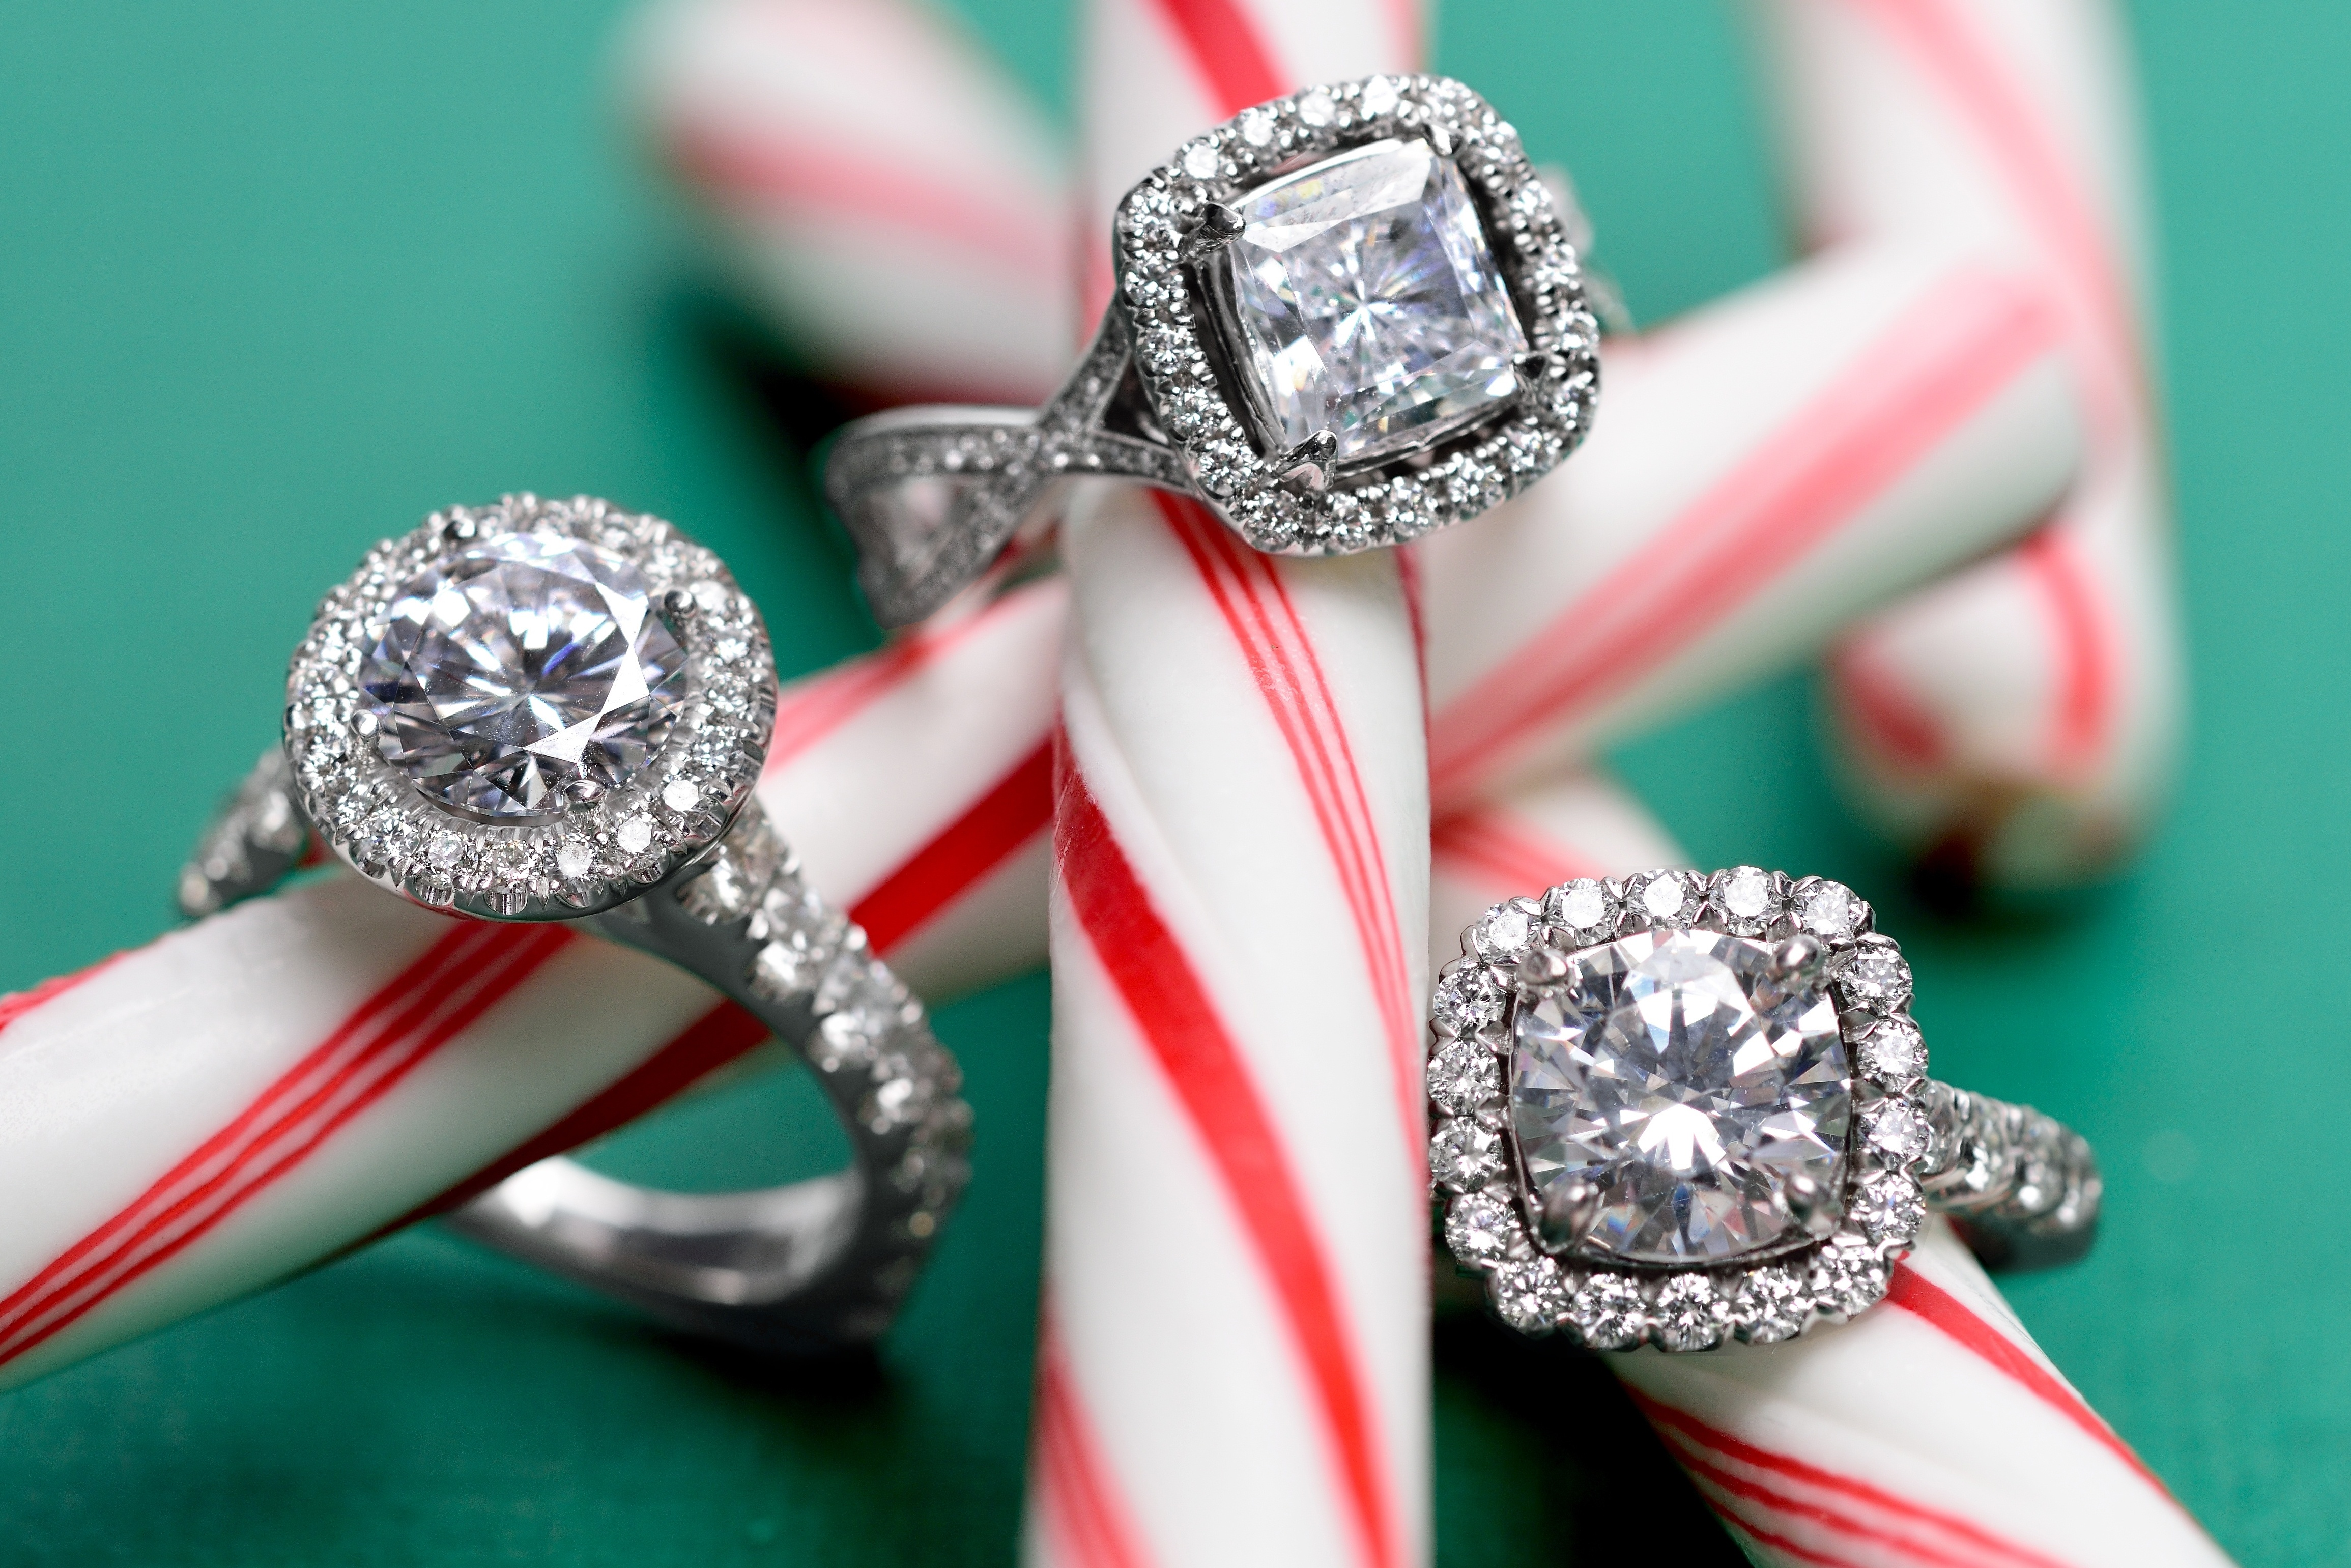 Real Advice On Gifting Jewelry For The Holidays